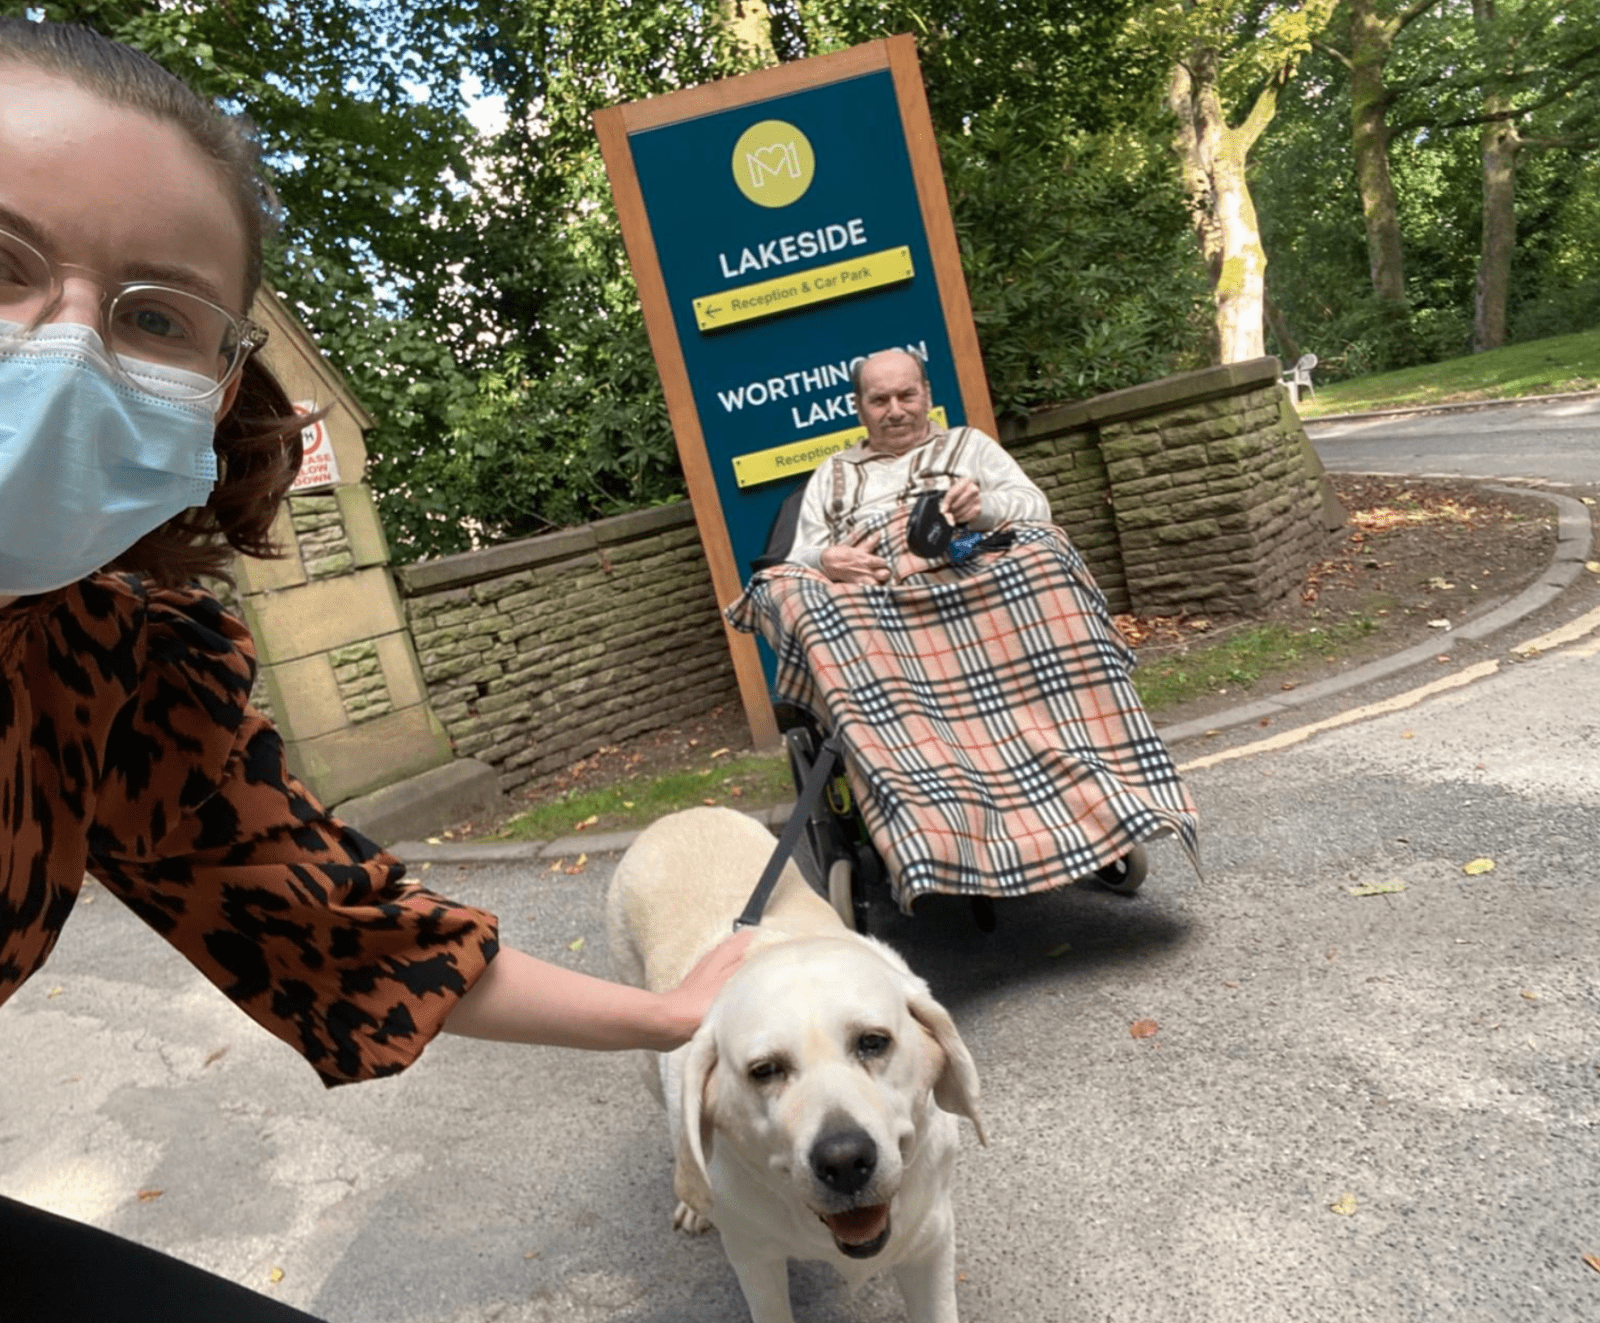 Manchester care home resident reunited with his beloved dog after two years, The Manc